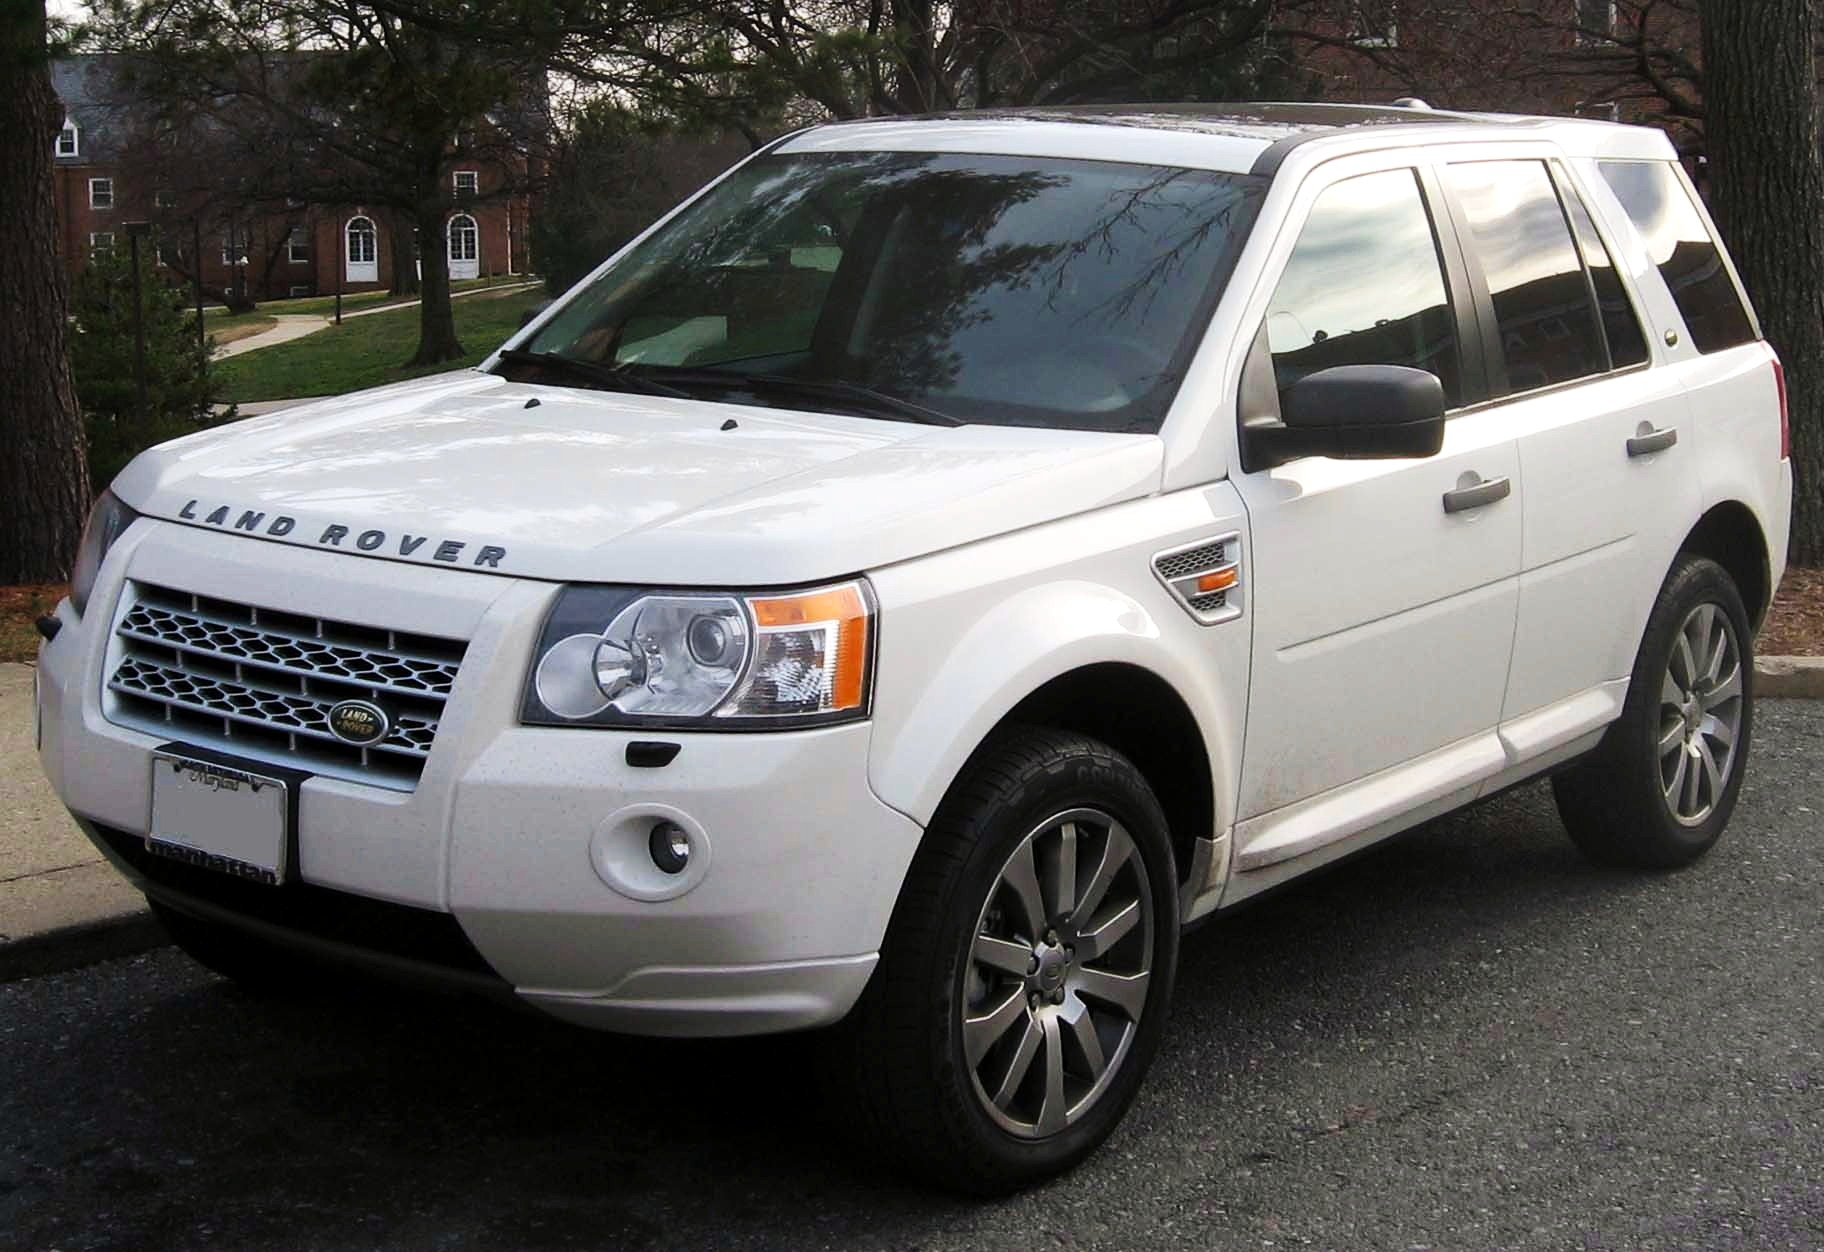 Land Rover Discovery Suvs >> 2 Fast Cars: Land Rover Freelander